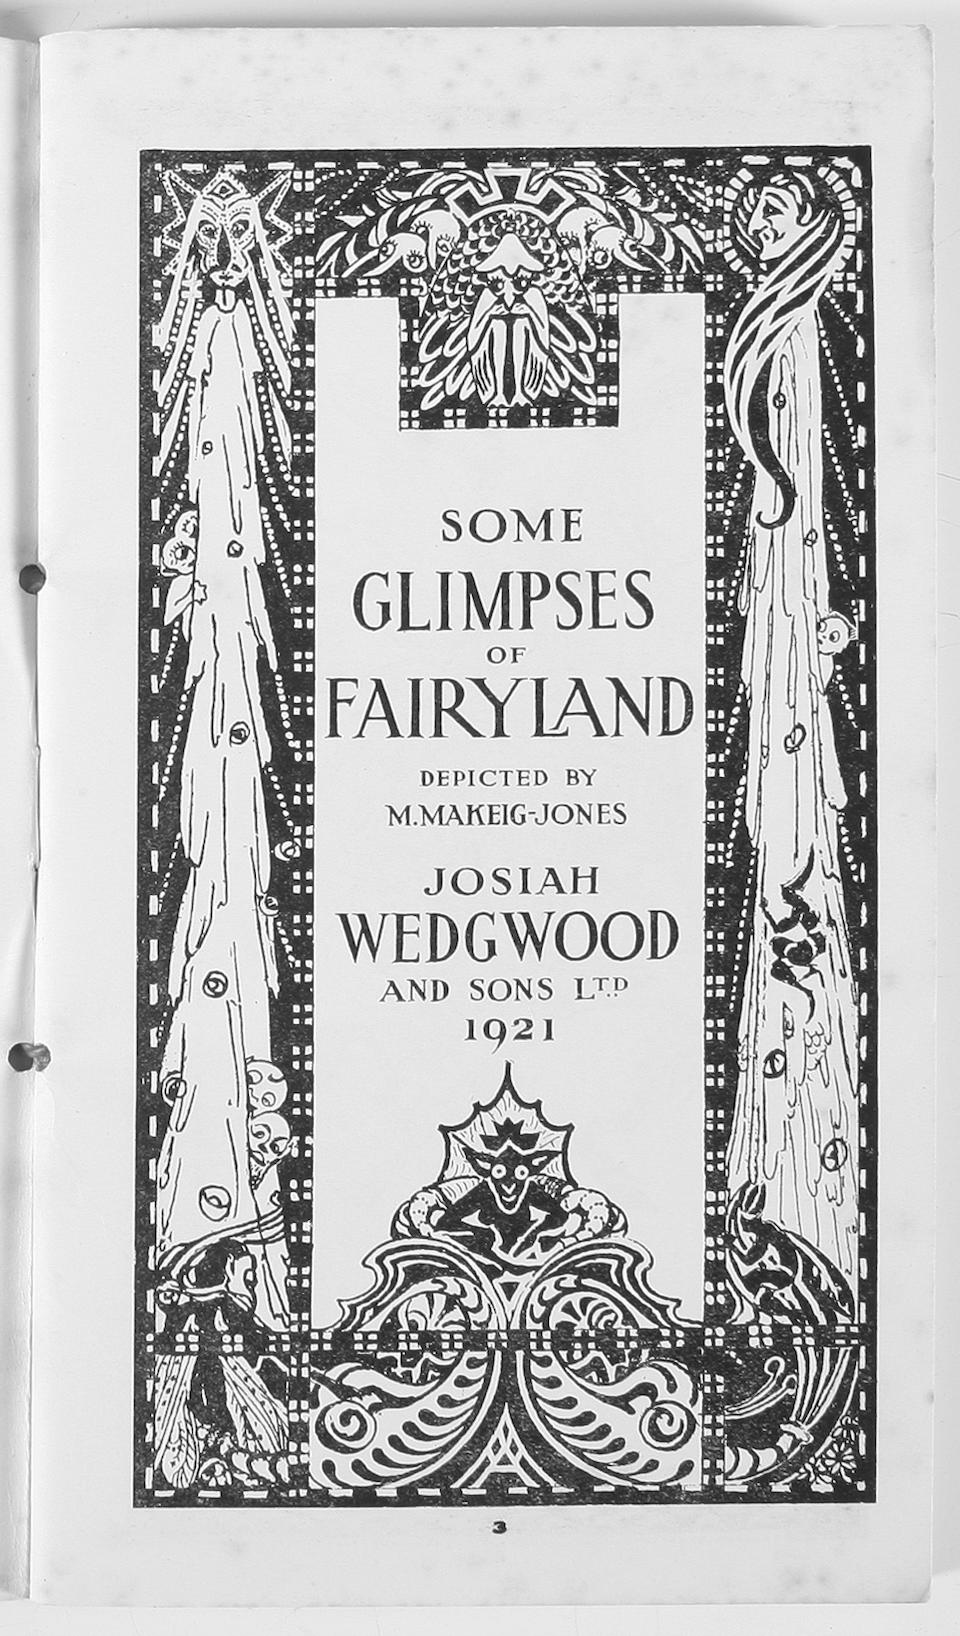 Wedgwood Fairyland Ware Catalogue: 'Some Glimpses of Fairyland Designed by M.Makeig-Jones, Josiah Wedgwood and Sons Ltd 1921'